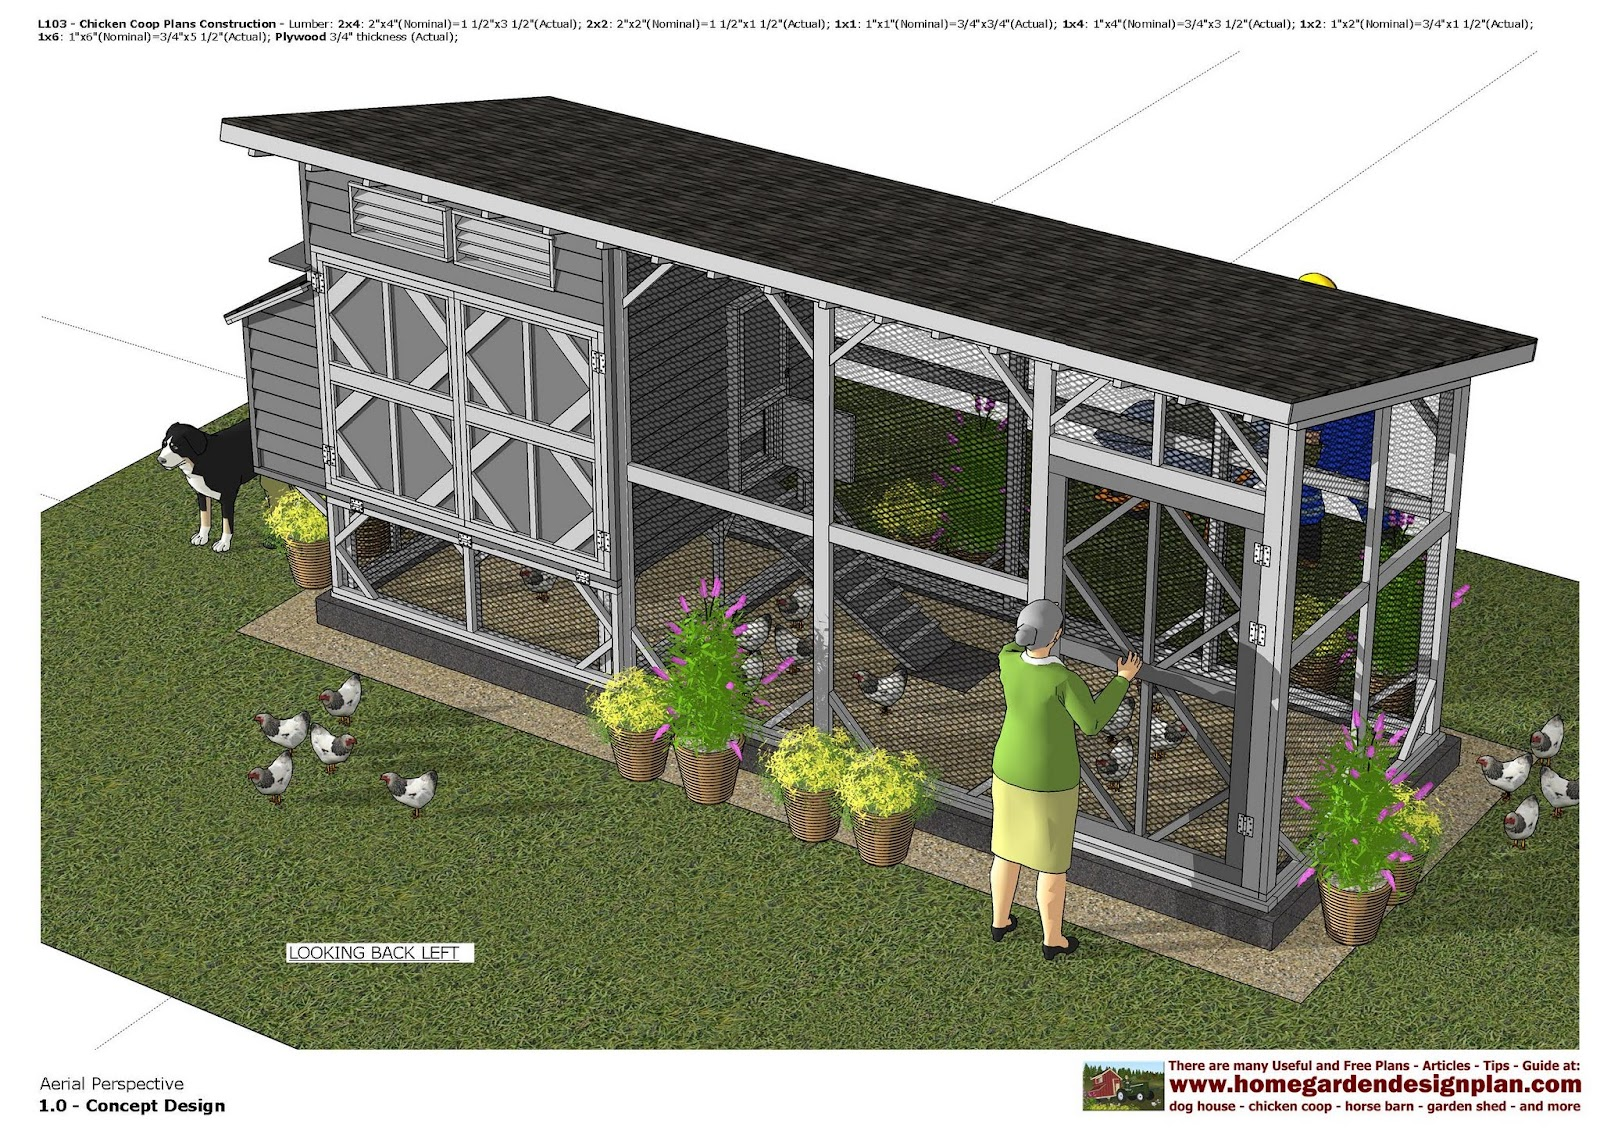 Home garden plans l103 chicken coop plans chicken for How to build a chicken hutch